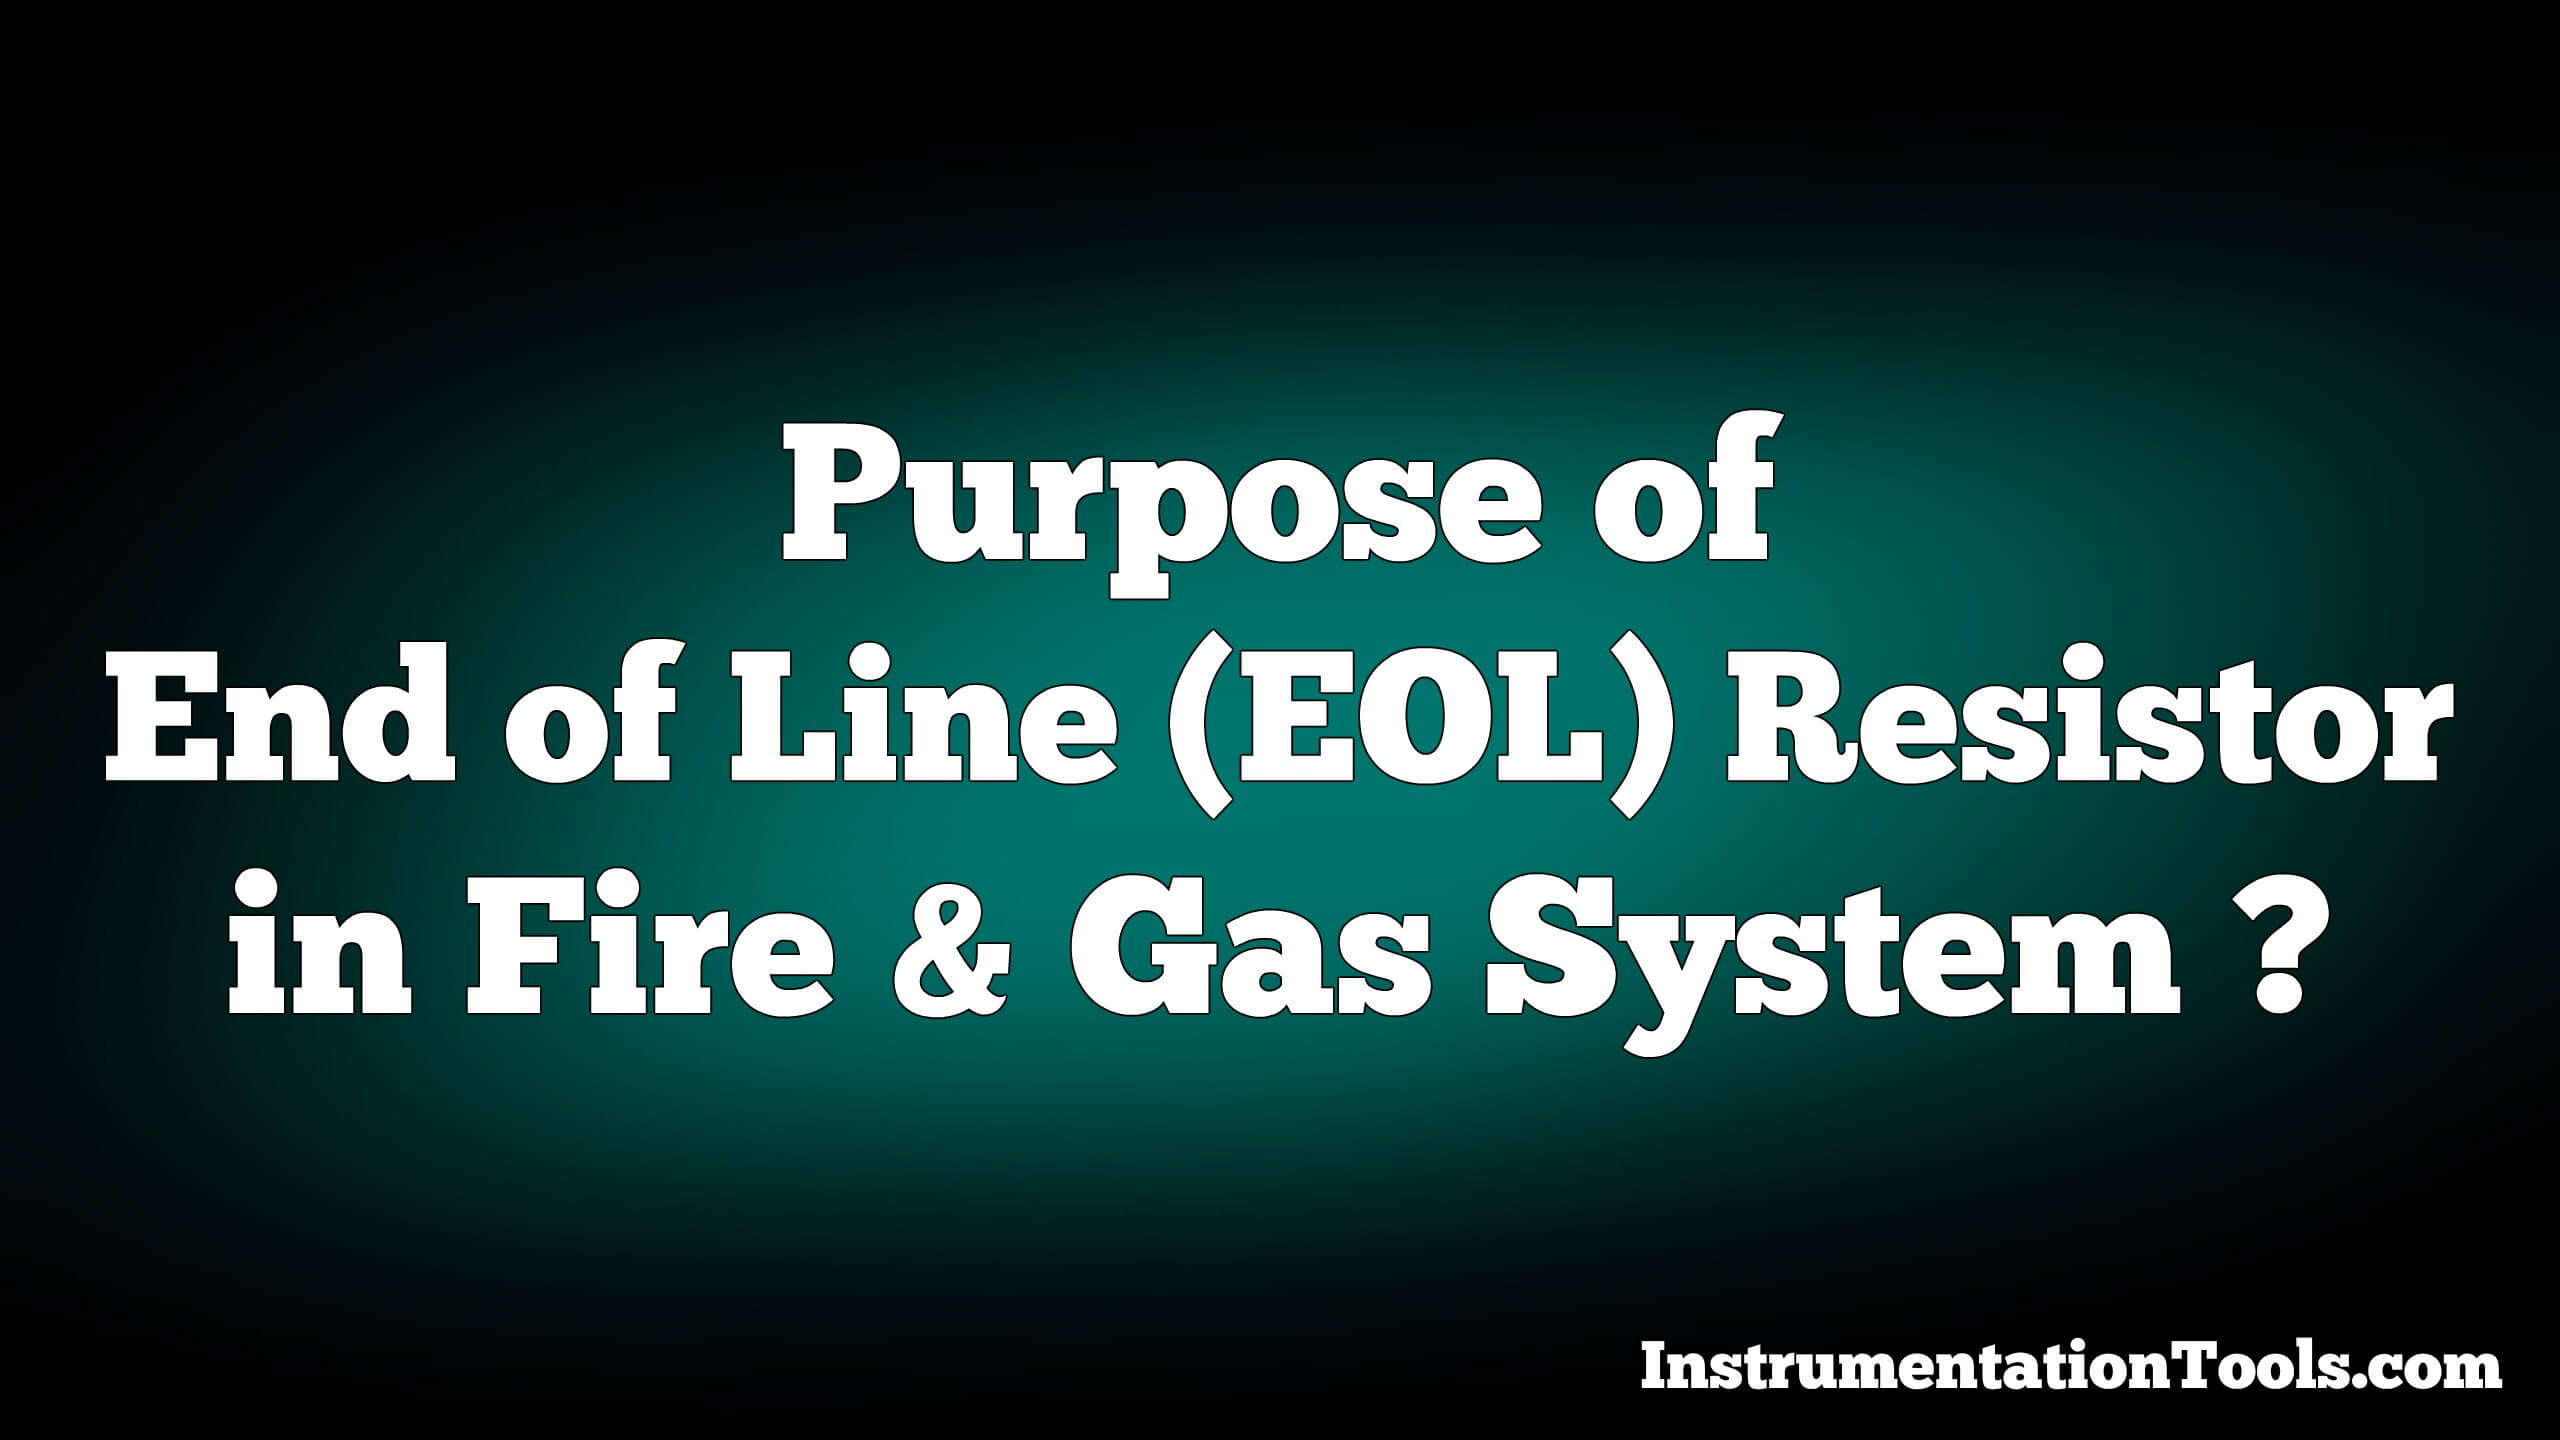 Why we use End of Line (EOL) Resistor in Fire and Gas System ...